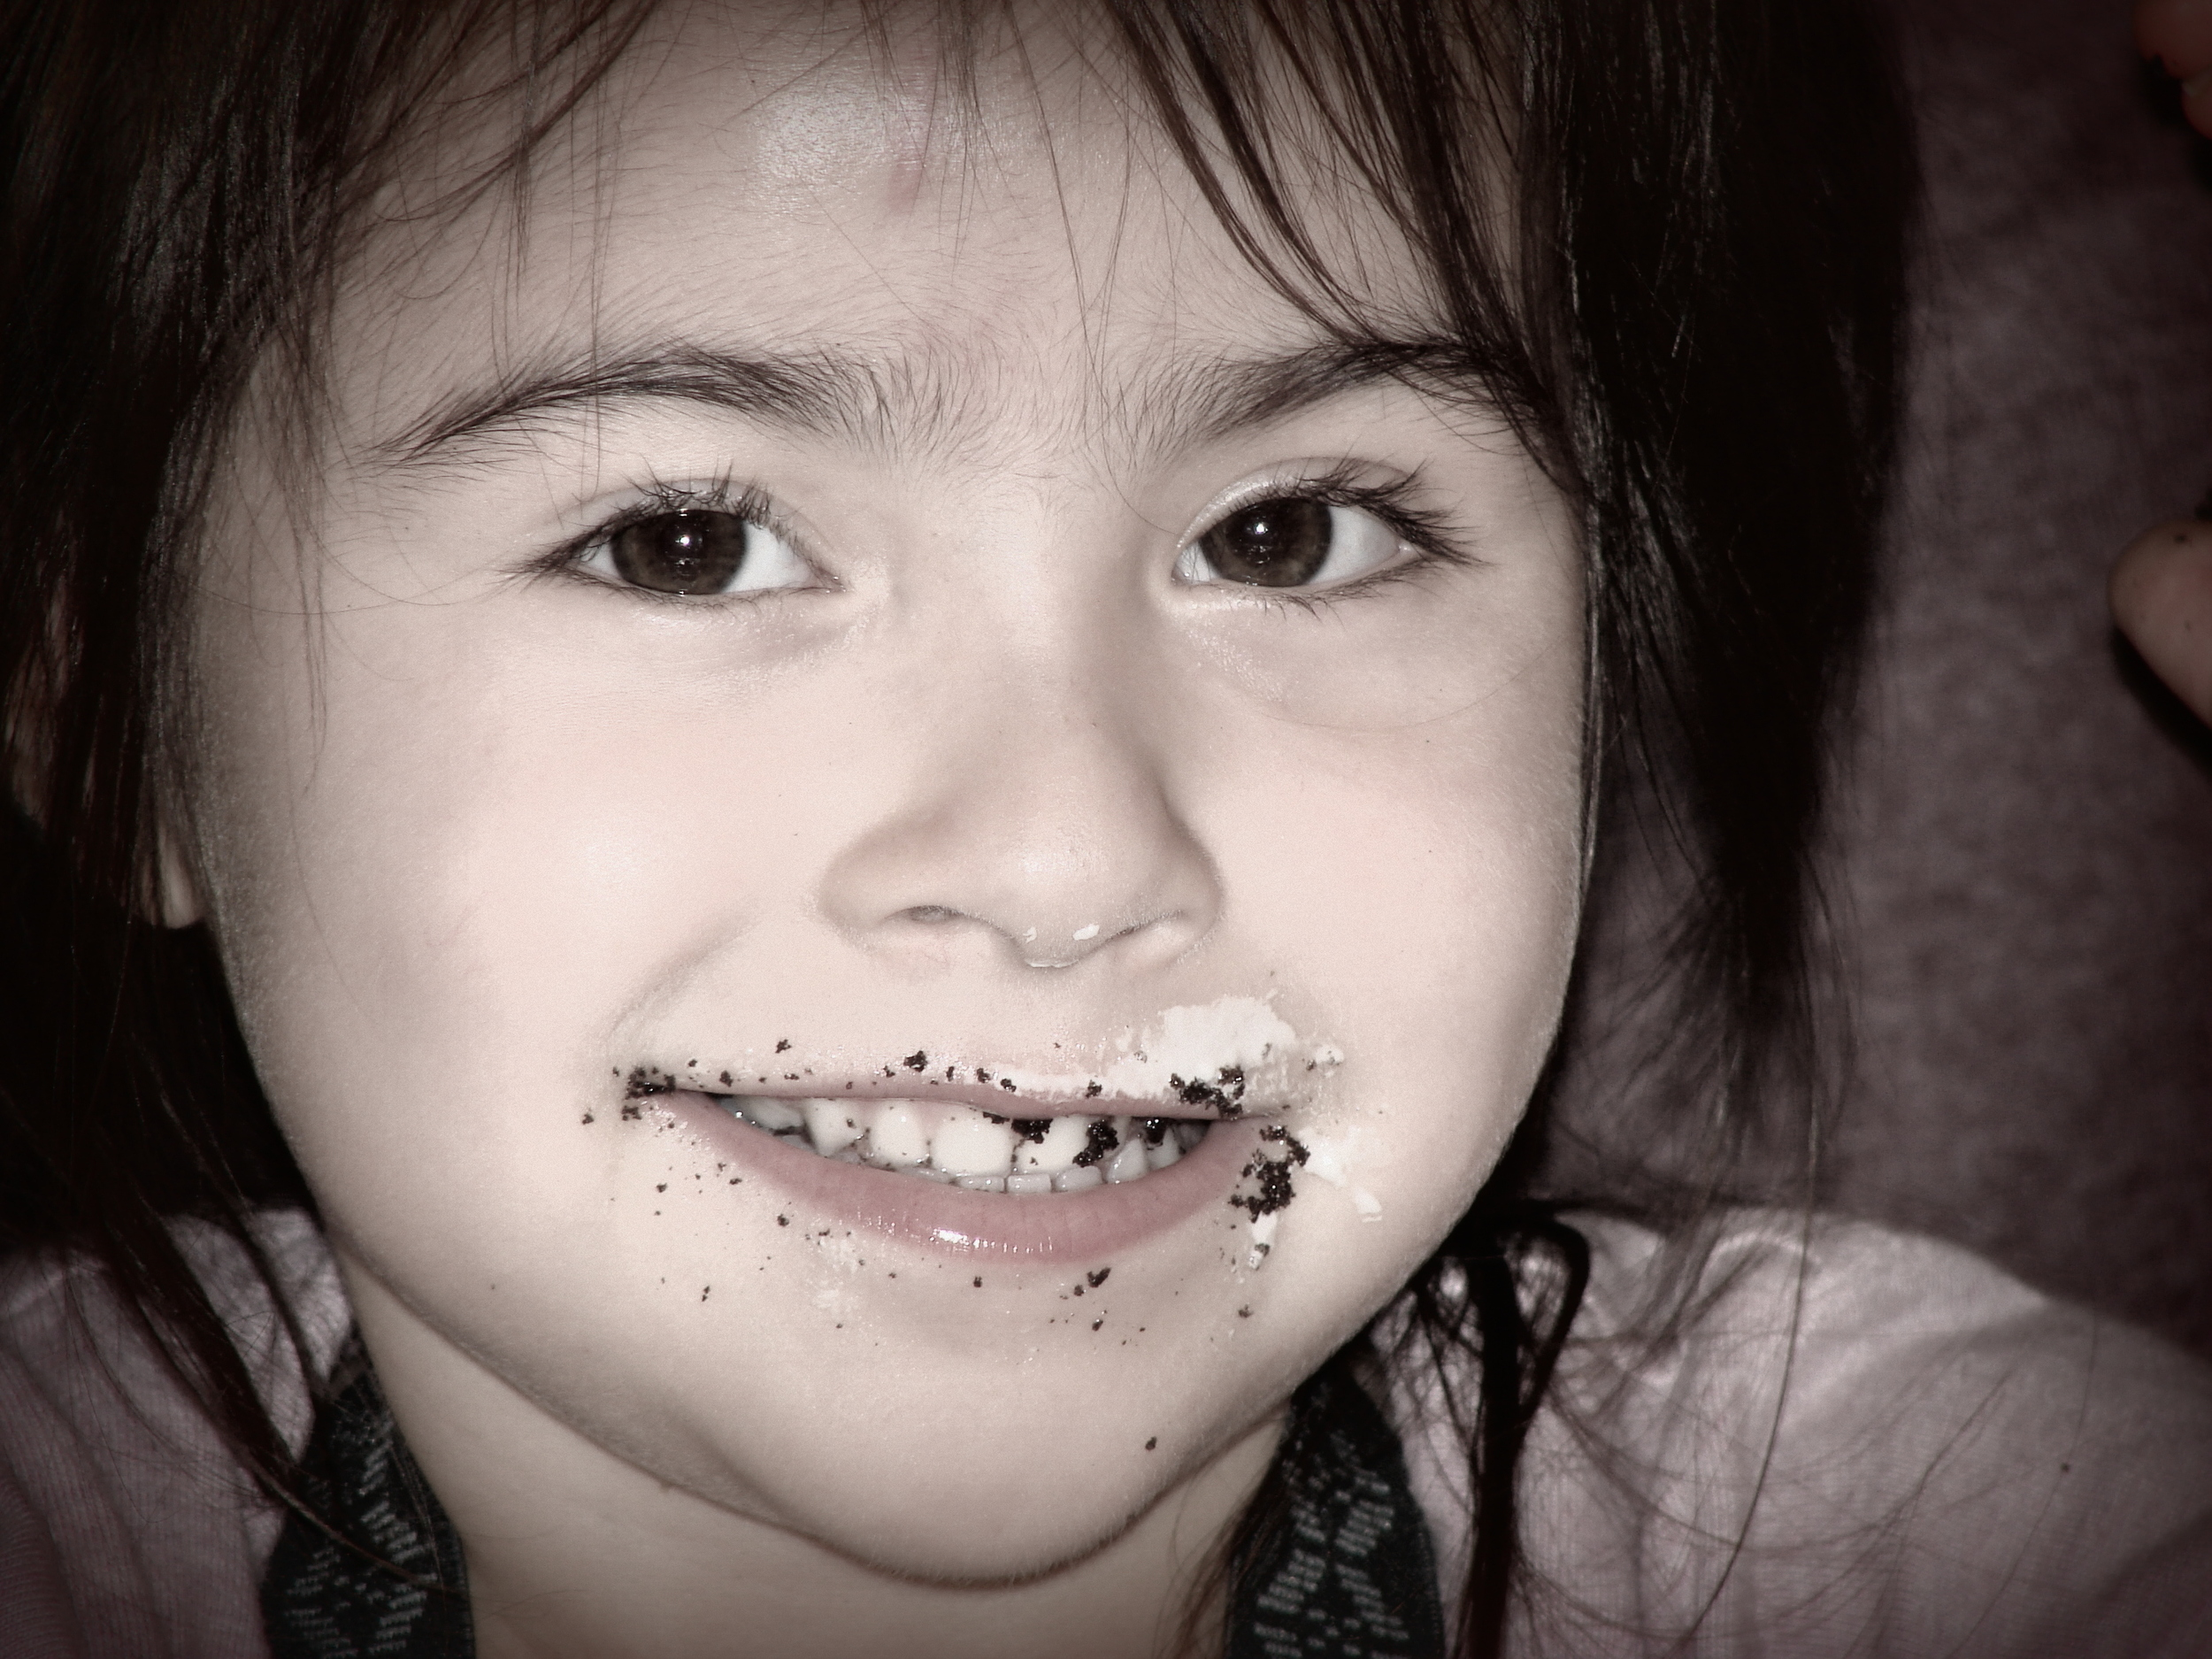 My niece Luz thoroughly basking in the joy of chocolate cake!